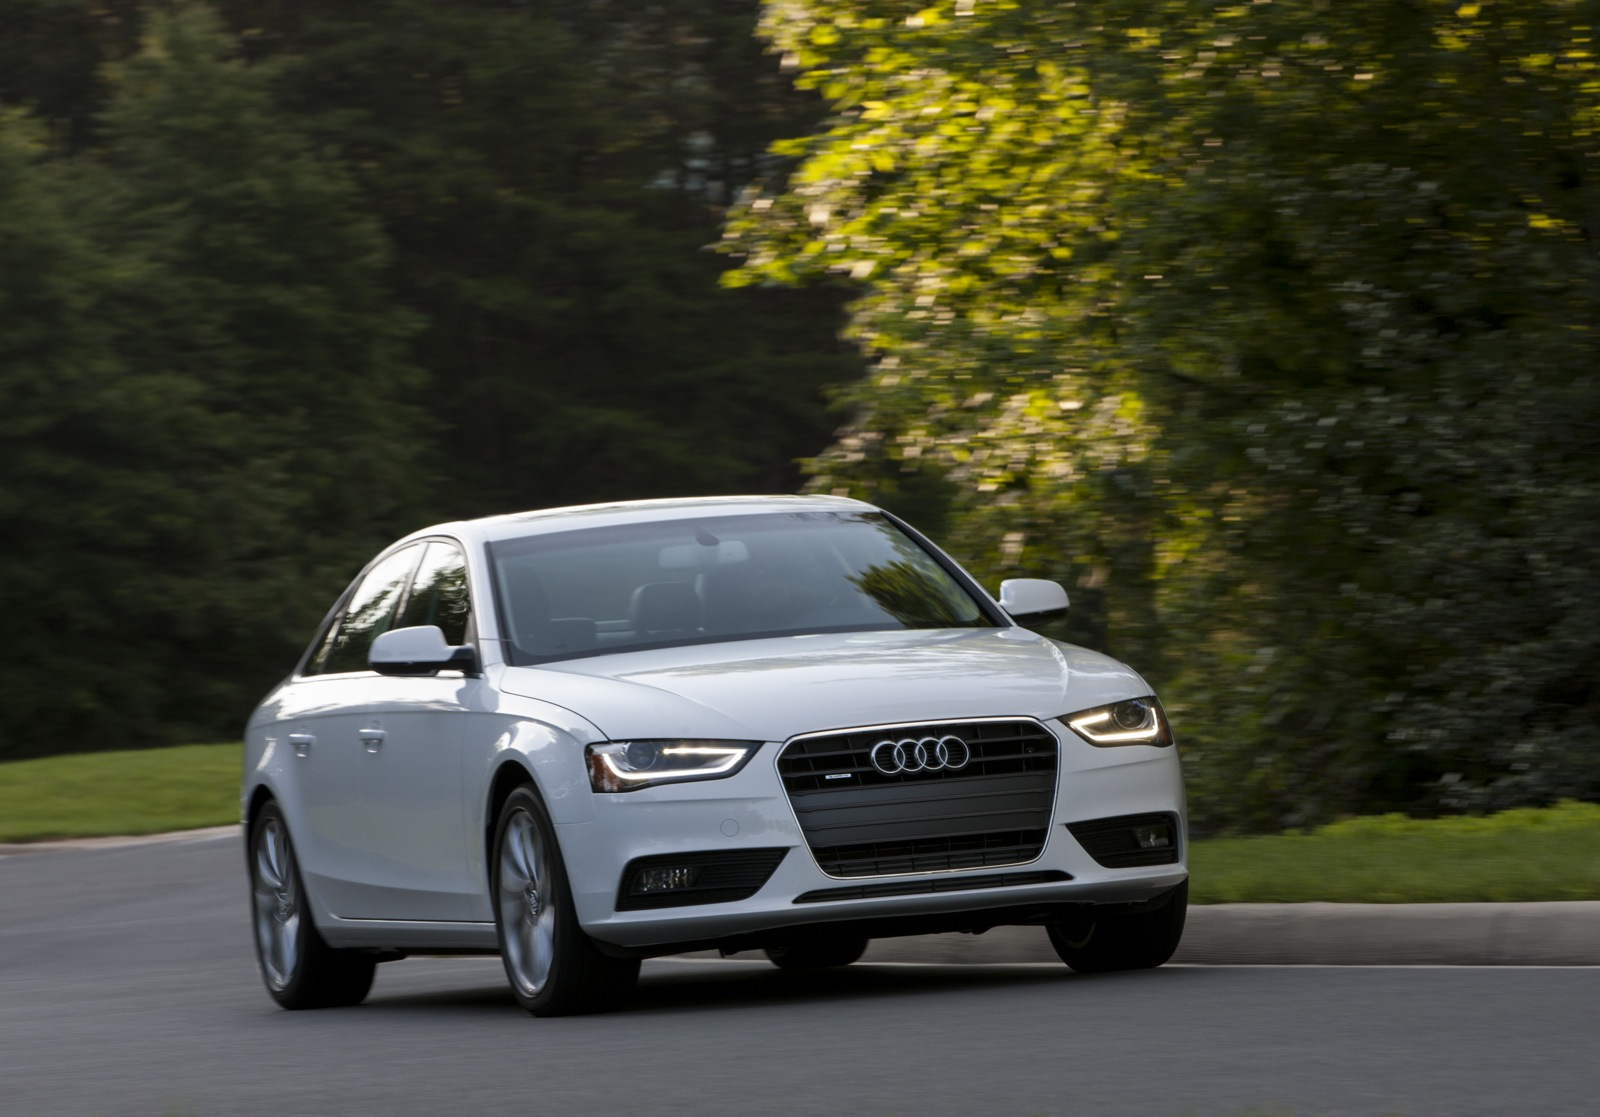 next gen audi a4 and q7 delayed for styling changes report. Black Bedroom Furniture Sets. Home Design Ideas